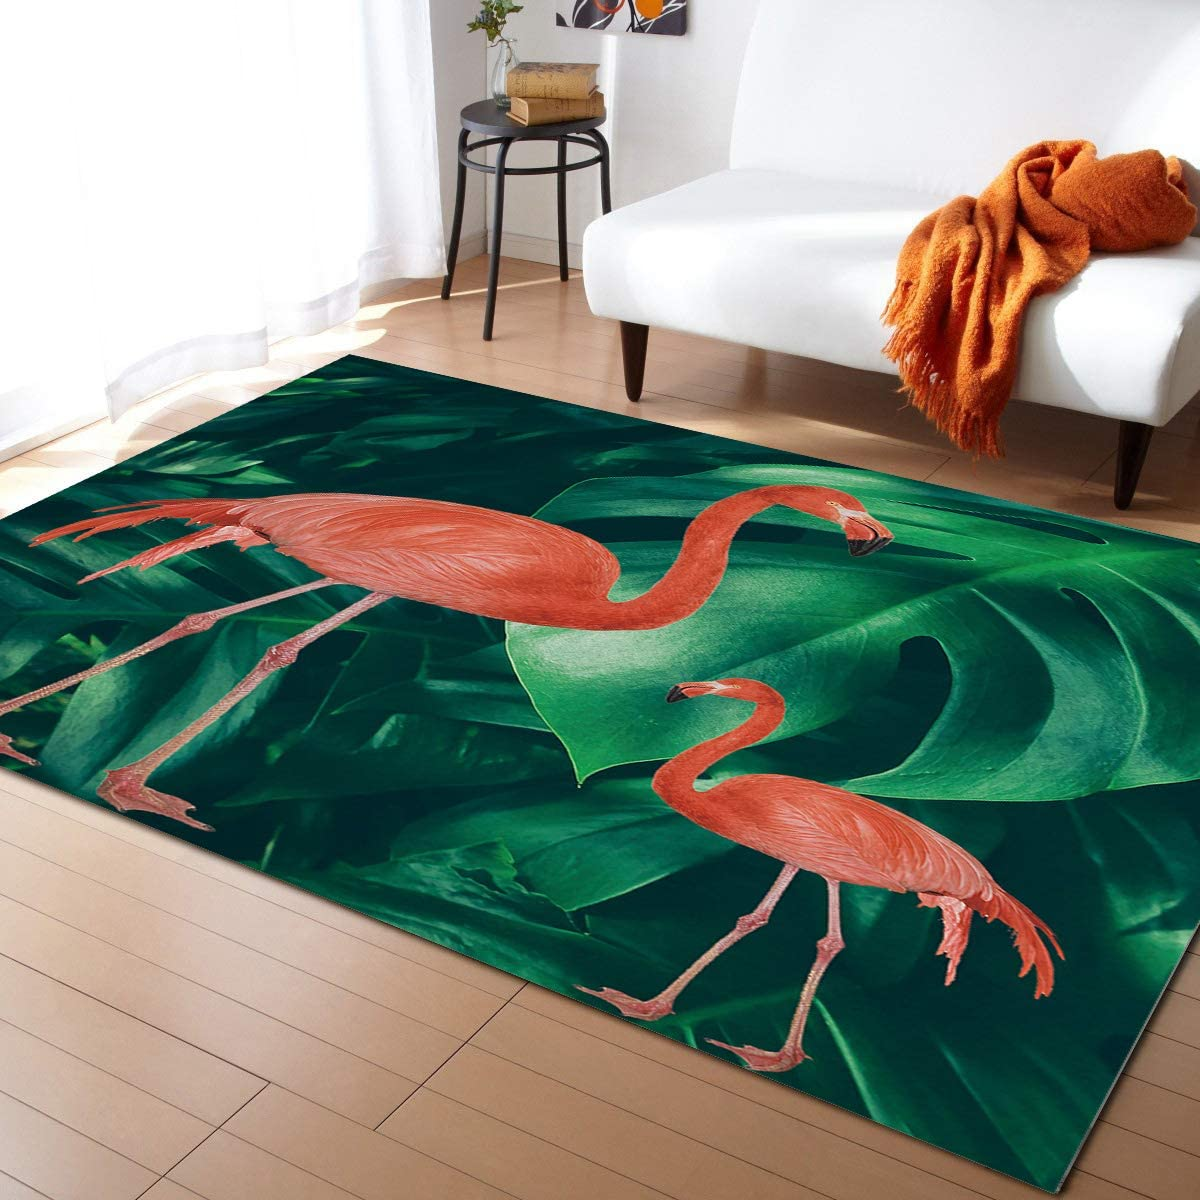 Prime Leader Choice Modern Contemporary Area Rug Green Room Cheap bargain Living for